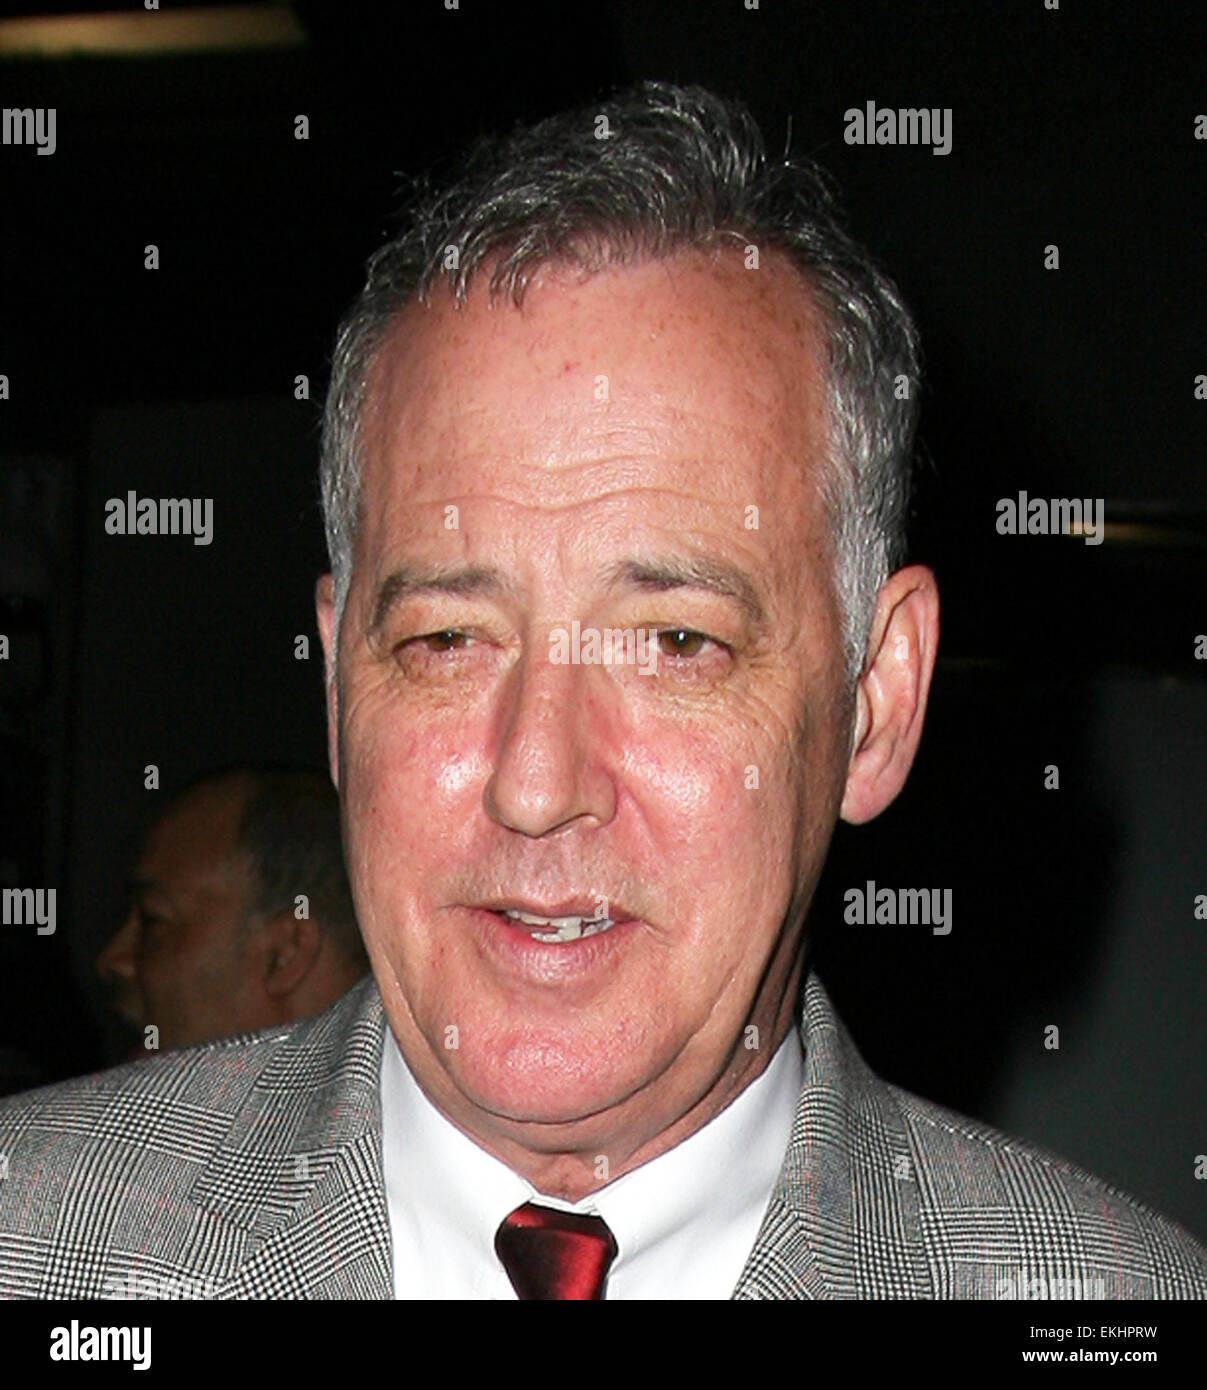 What Movie Was Filmed At Westbury Gardens: Michael Barrymore Portrait Stock Photos & Michael